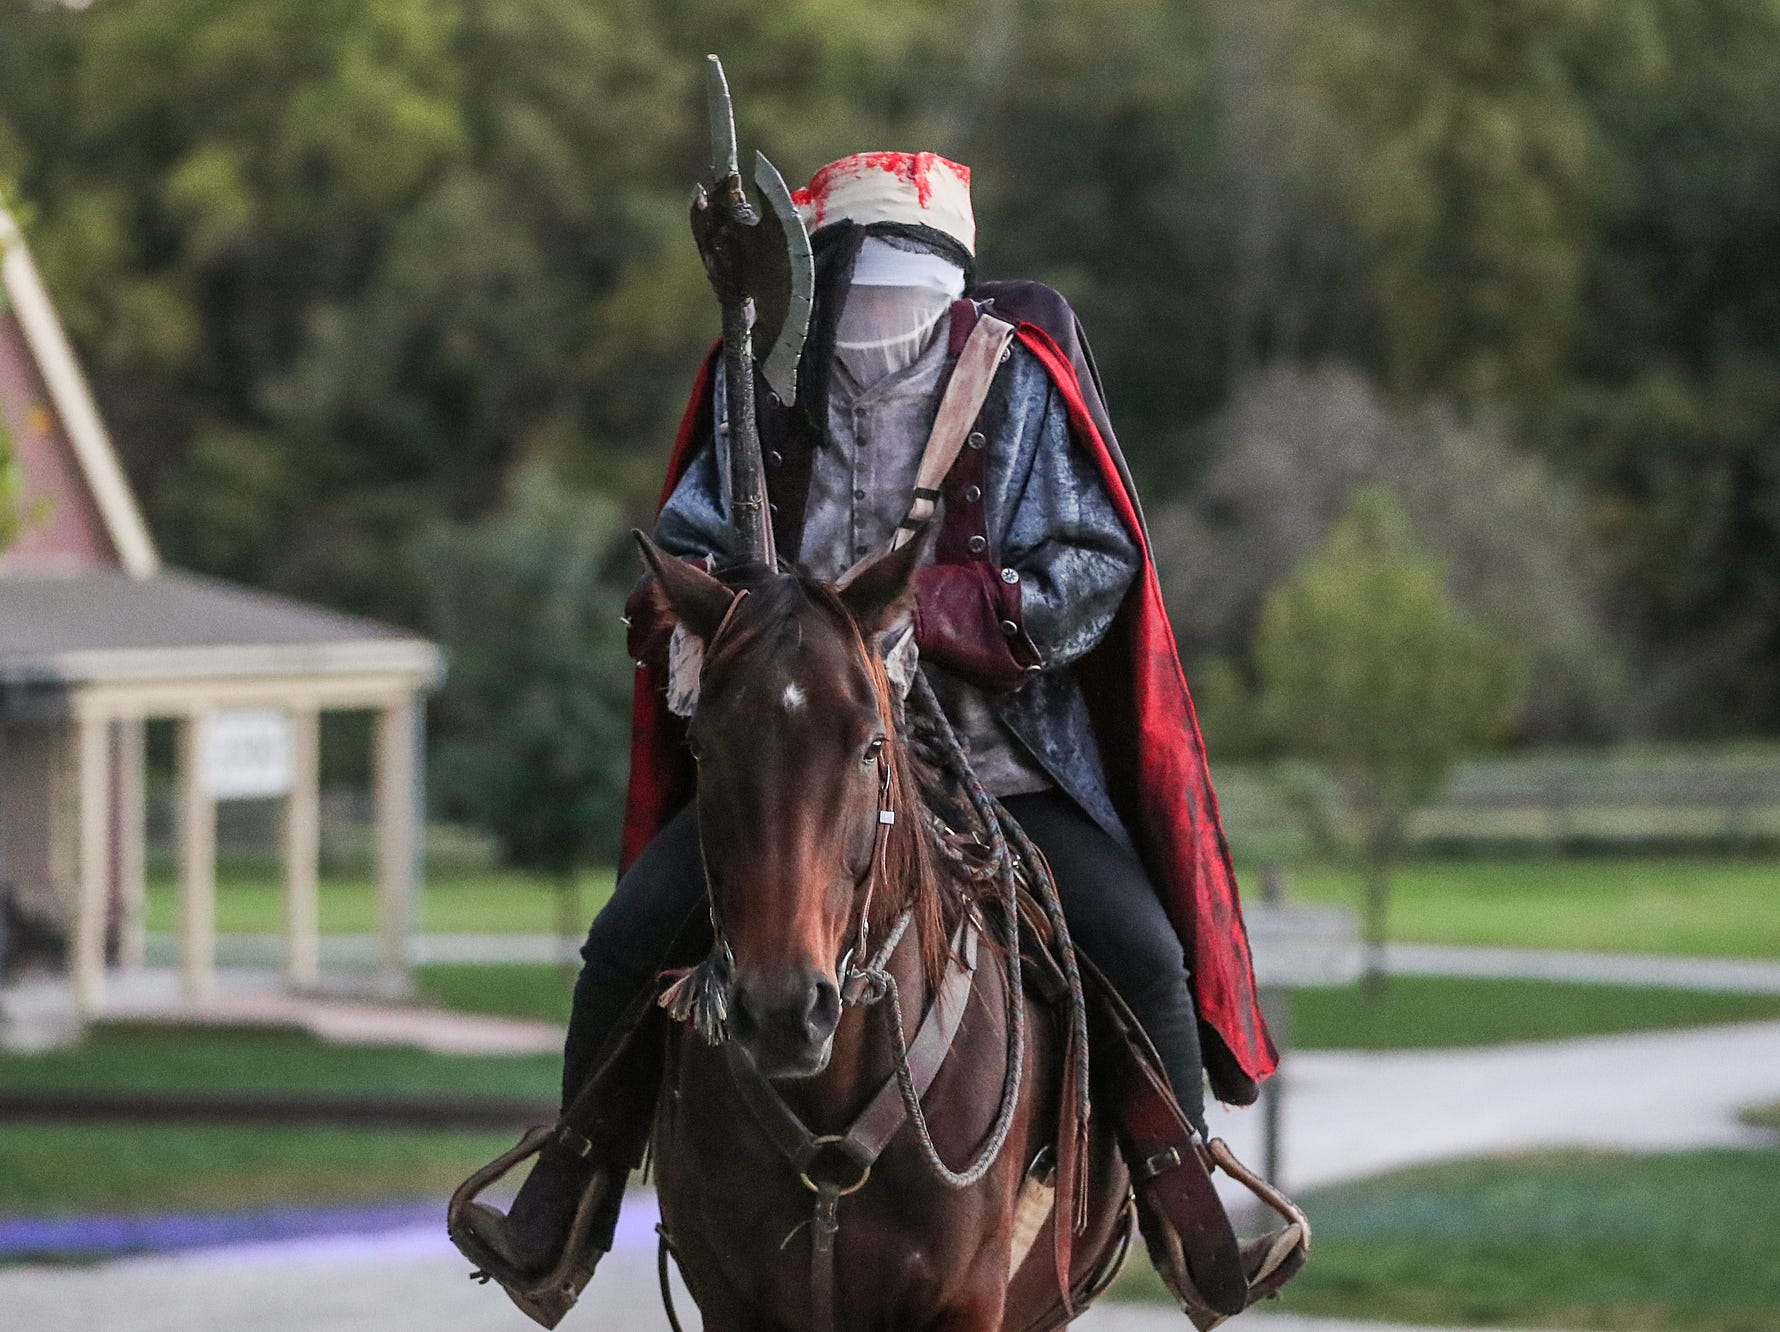 The Headless Horseman chases behind a wagon full of thrill-seekers on opening night of the annual Headless Horseman Halloween festival at Conner Prairie in Fishers, Ind., Thursday, Oct. 11, 2018. The festival is held from 6 to 9 p.m. every Thursday through Sunday, ending Oct. 28, 2018.